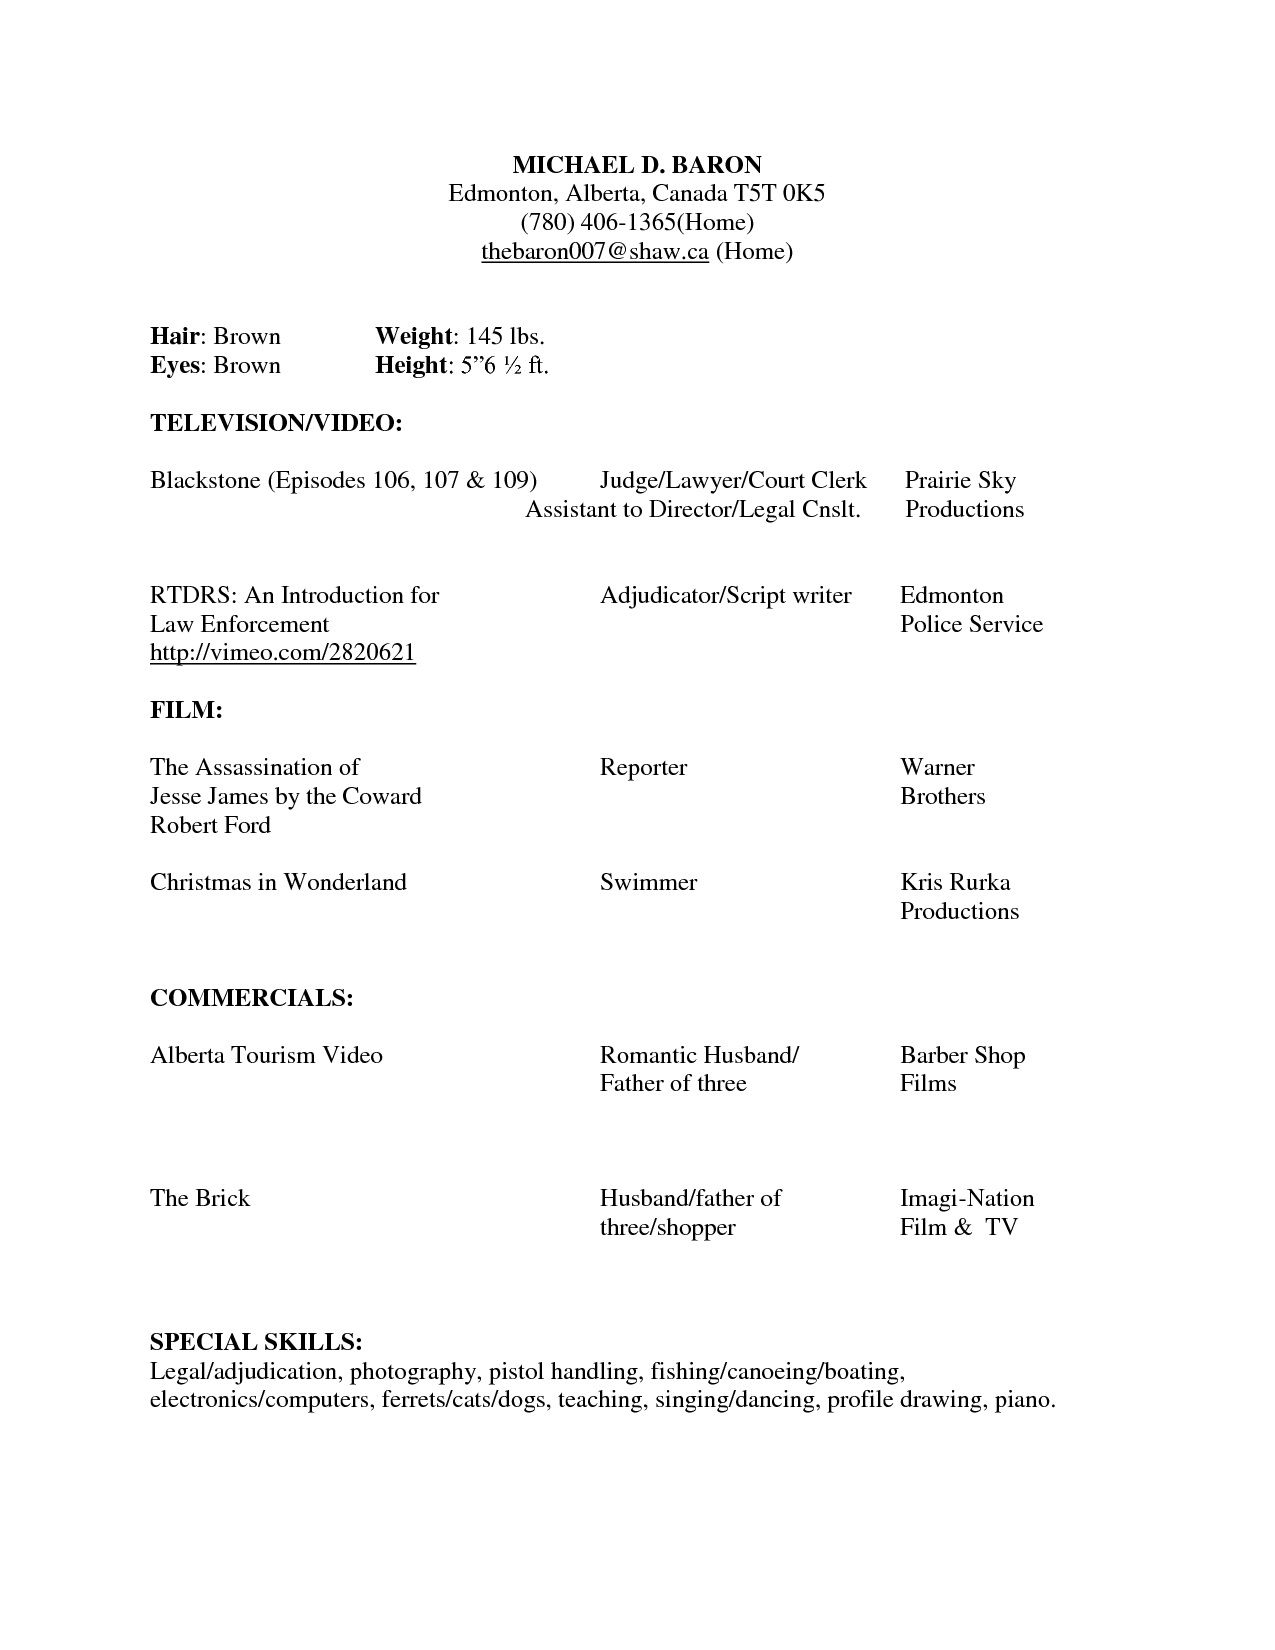 How To Write A Resume For Beginners Beginner Acting Resume Sample Beginner Acting Resume